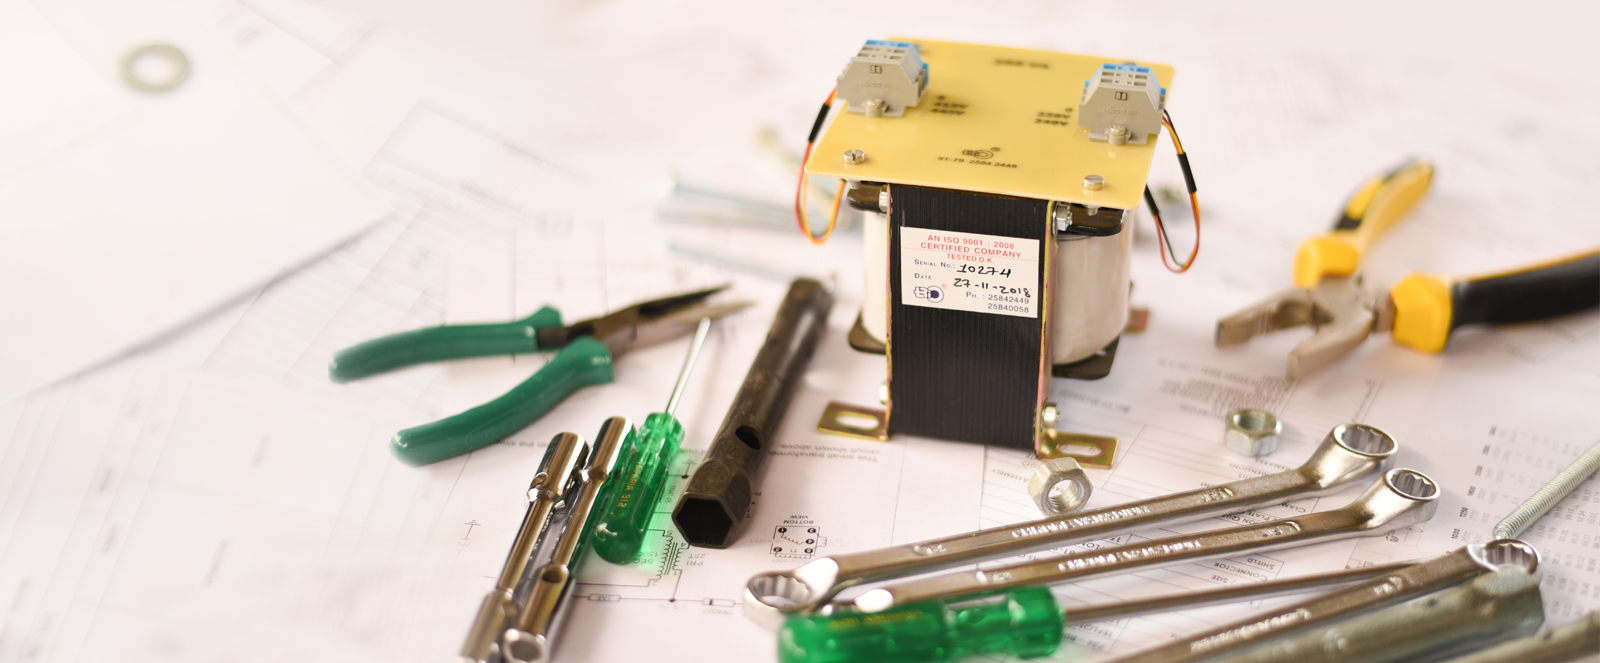 Tools used in transformers maufacturing